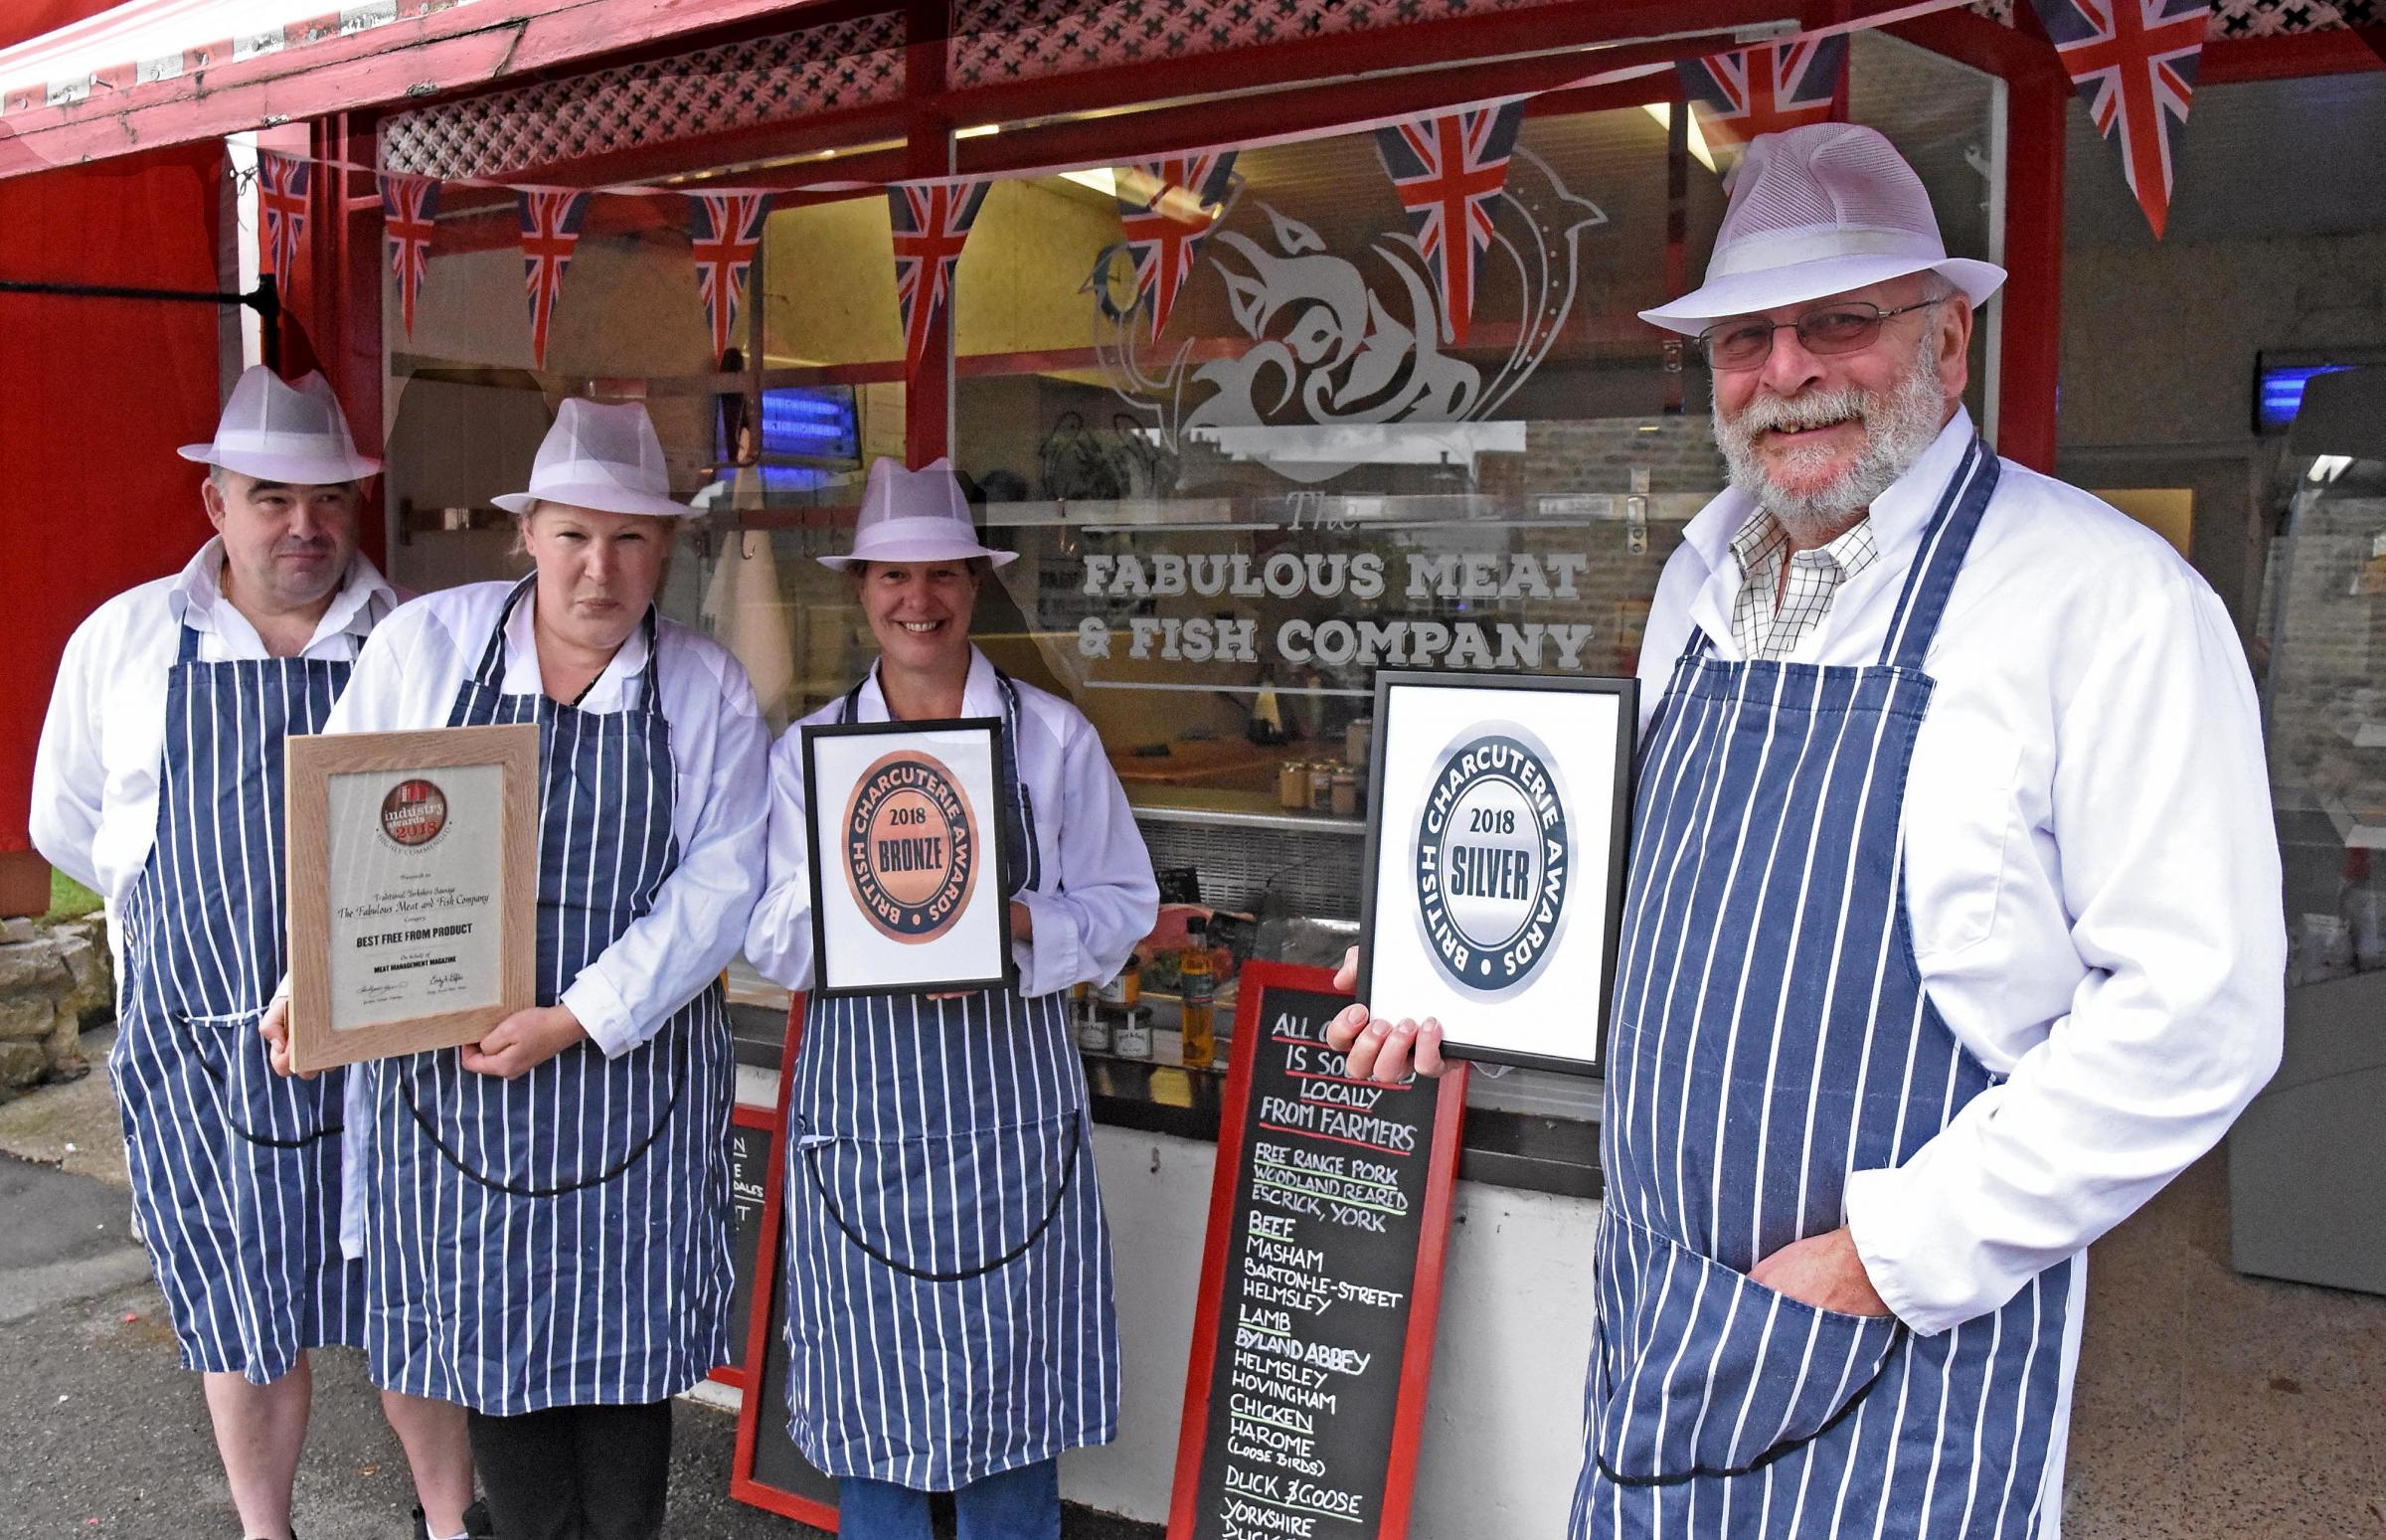 Alan Goodwill, right, and staff members Gary Benson, Sarah Wayper and Amanda Goodwill with their bronze and silver awards at the Fabulous Meat and Fish Company, which recently took over a butcher's shop in Helmsley    Picture: Nigel Holland